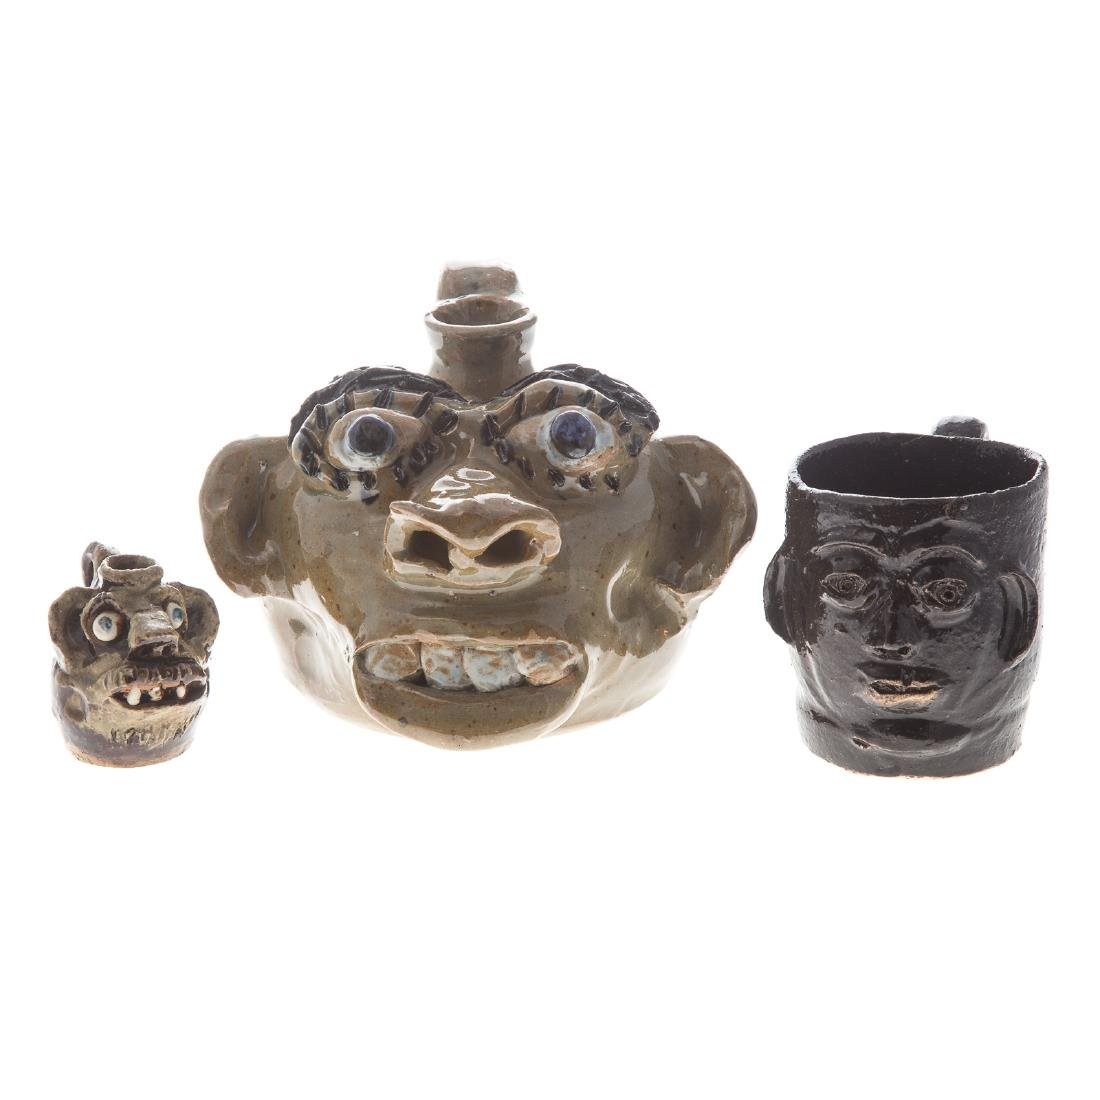 Three pieces of U.S. southern grotesque pottery